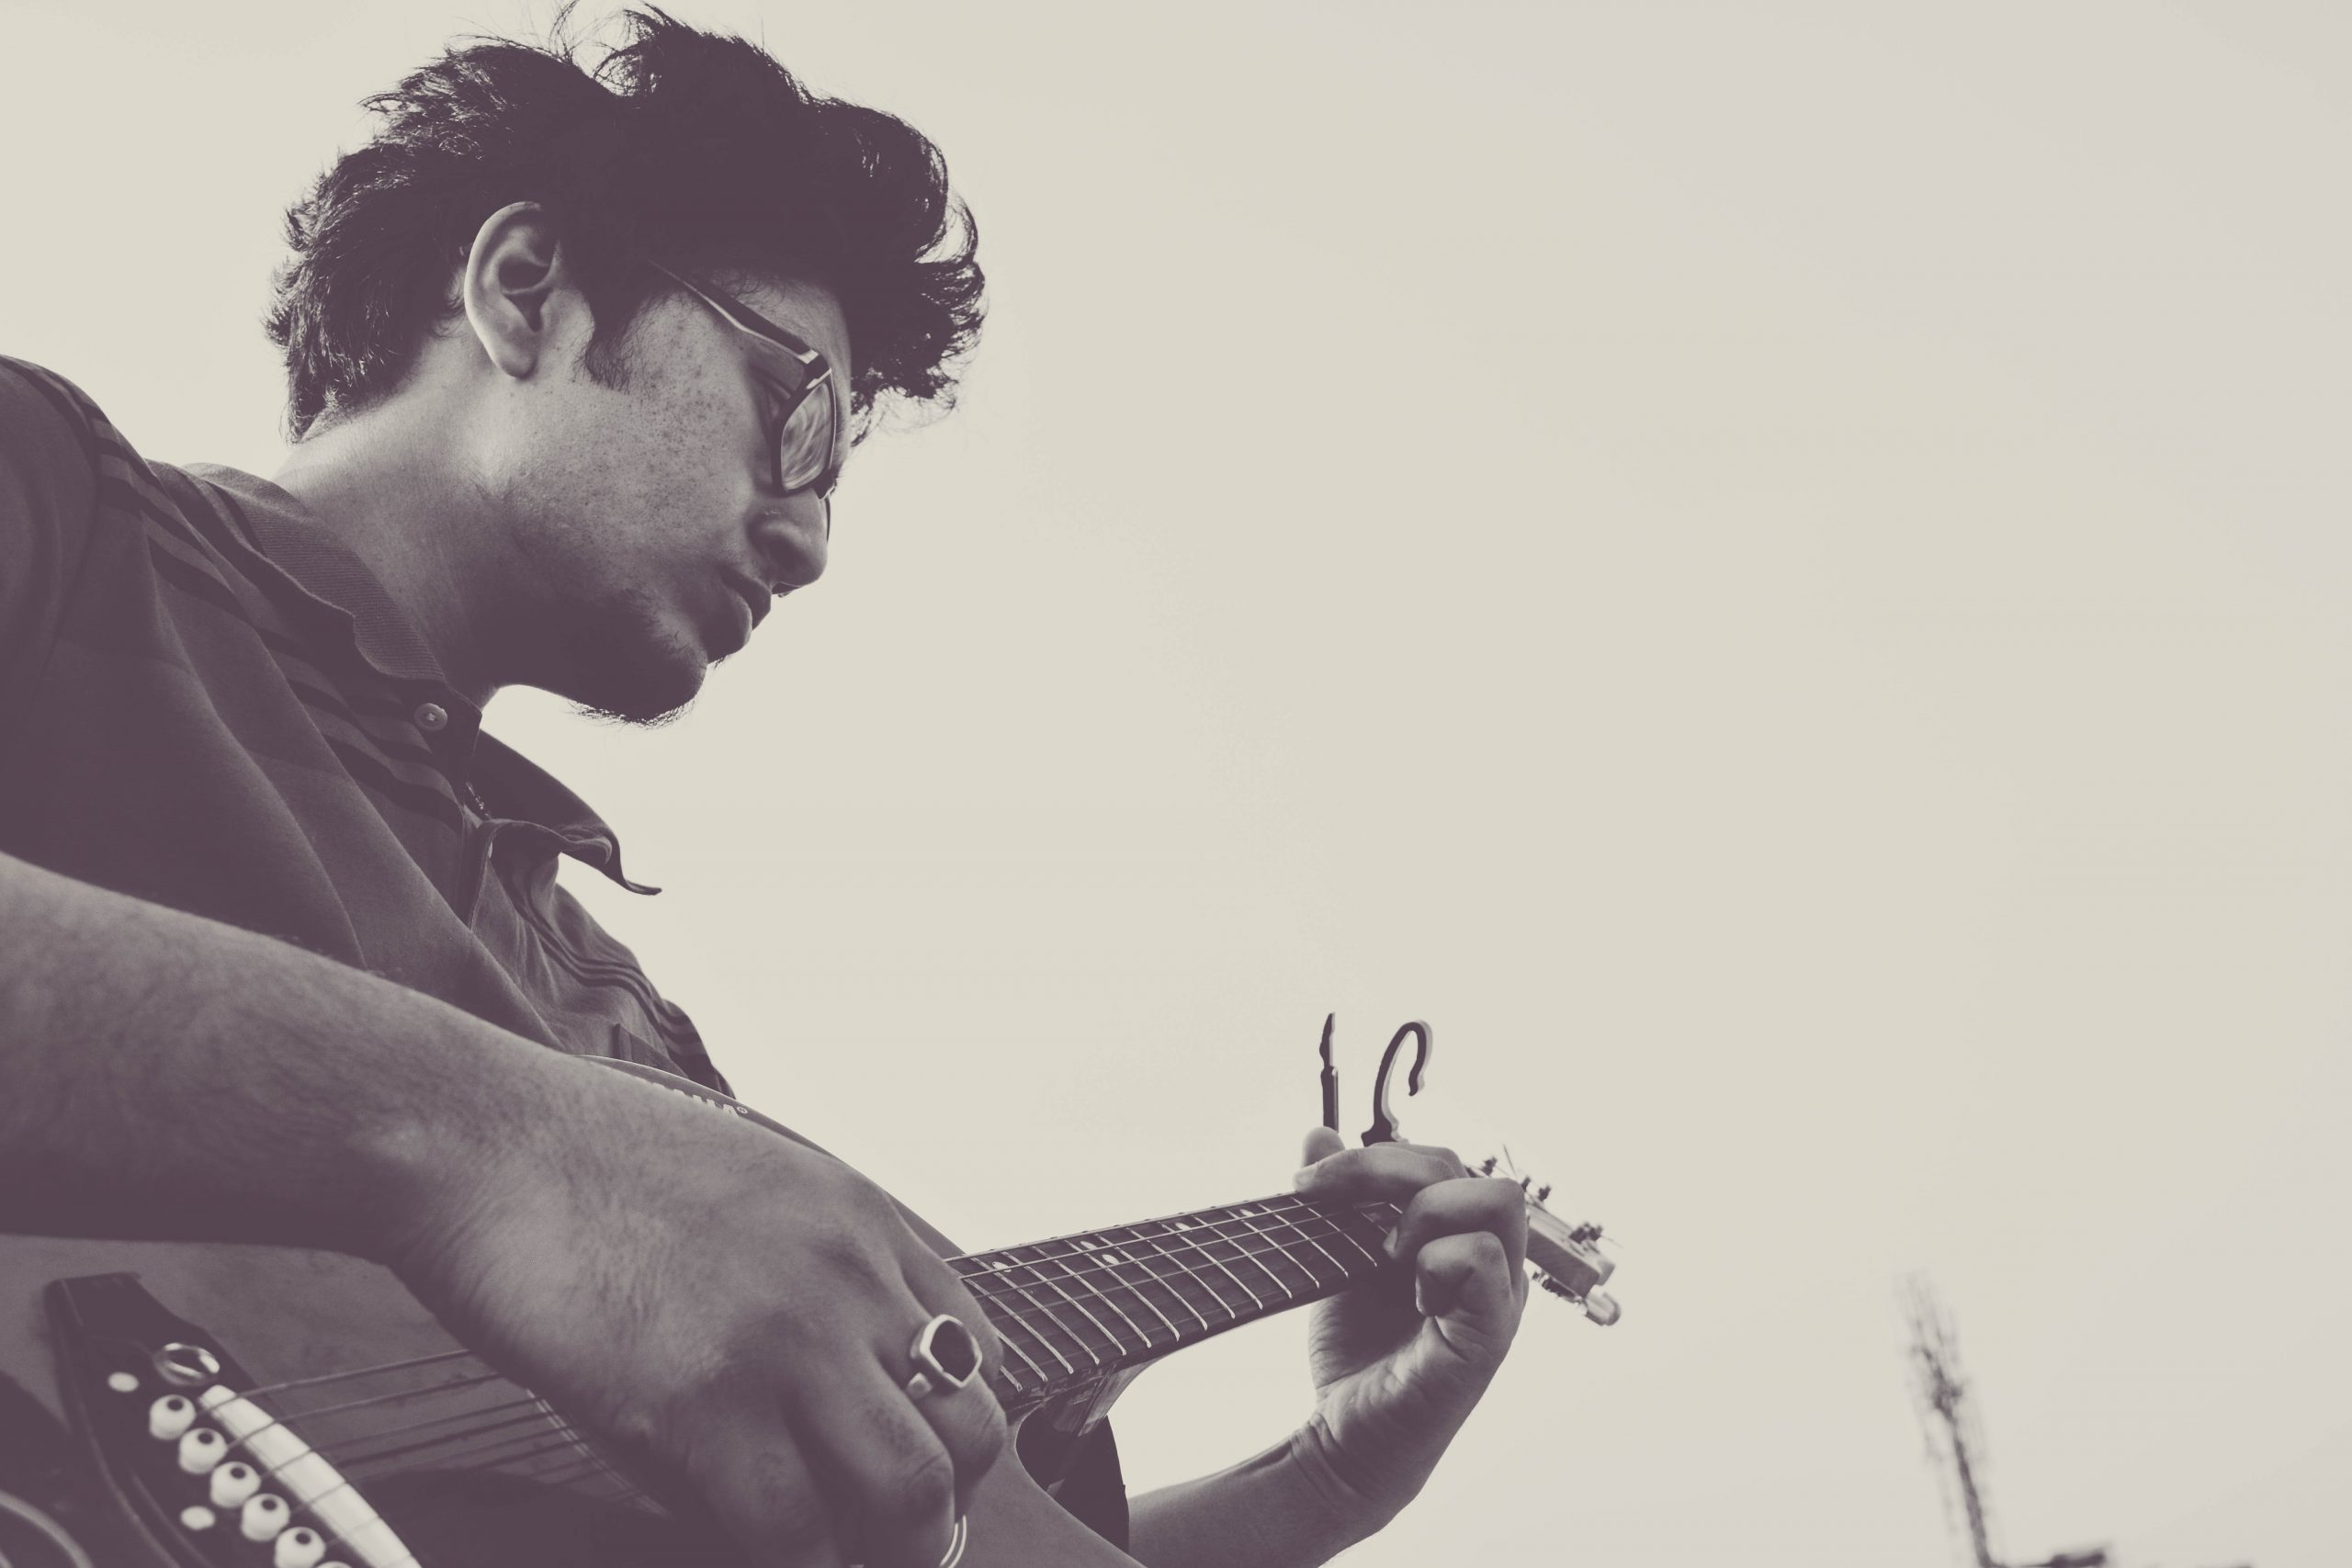 image of musician passionately playing guitar